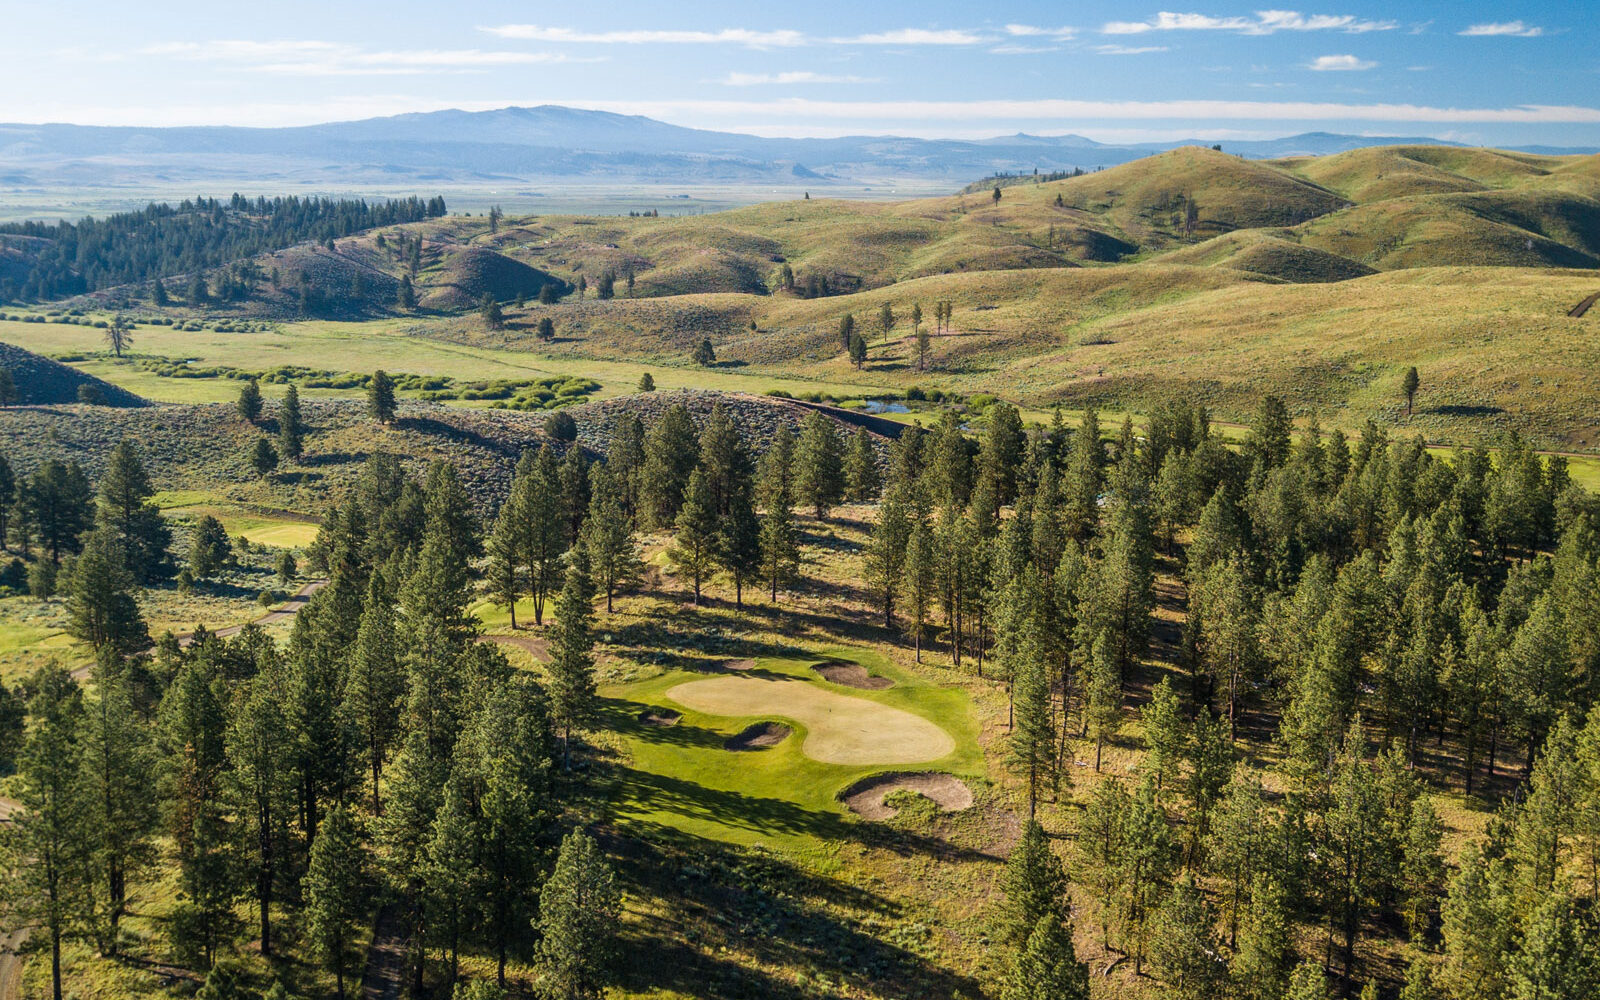 Golf among the Ponderosa Pines at Silvies Valley Ranch